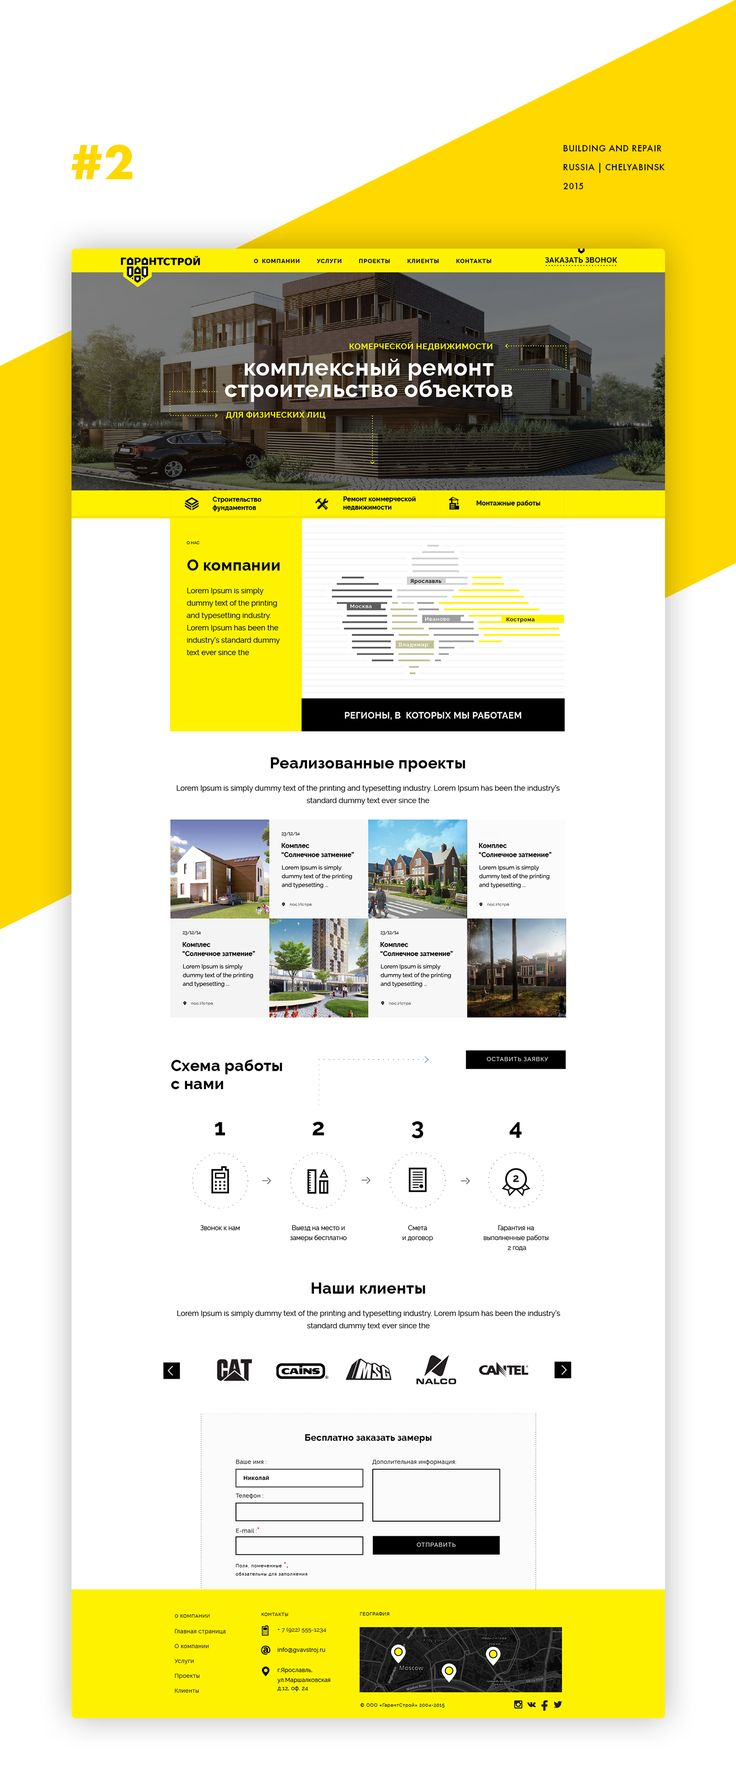 This is my set  of landing pages (2015-2016). All designs are made with love.